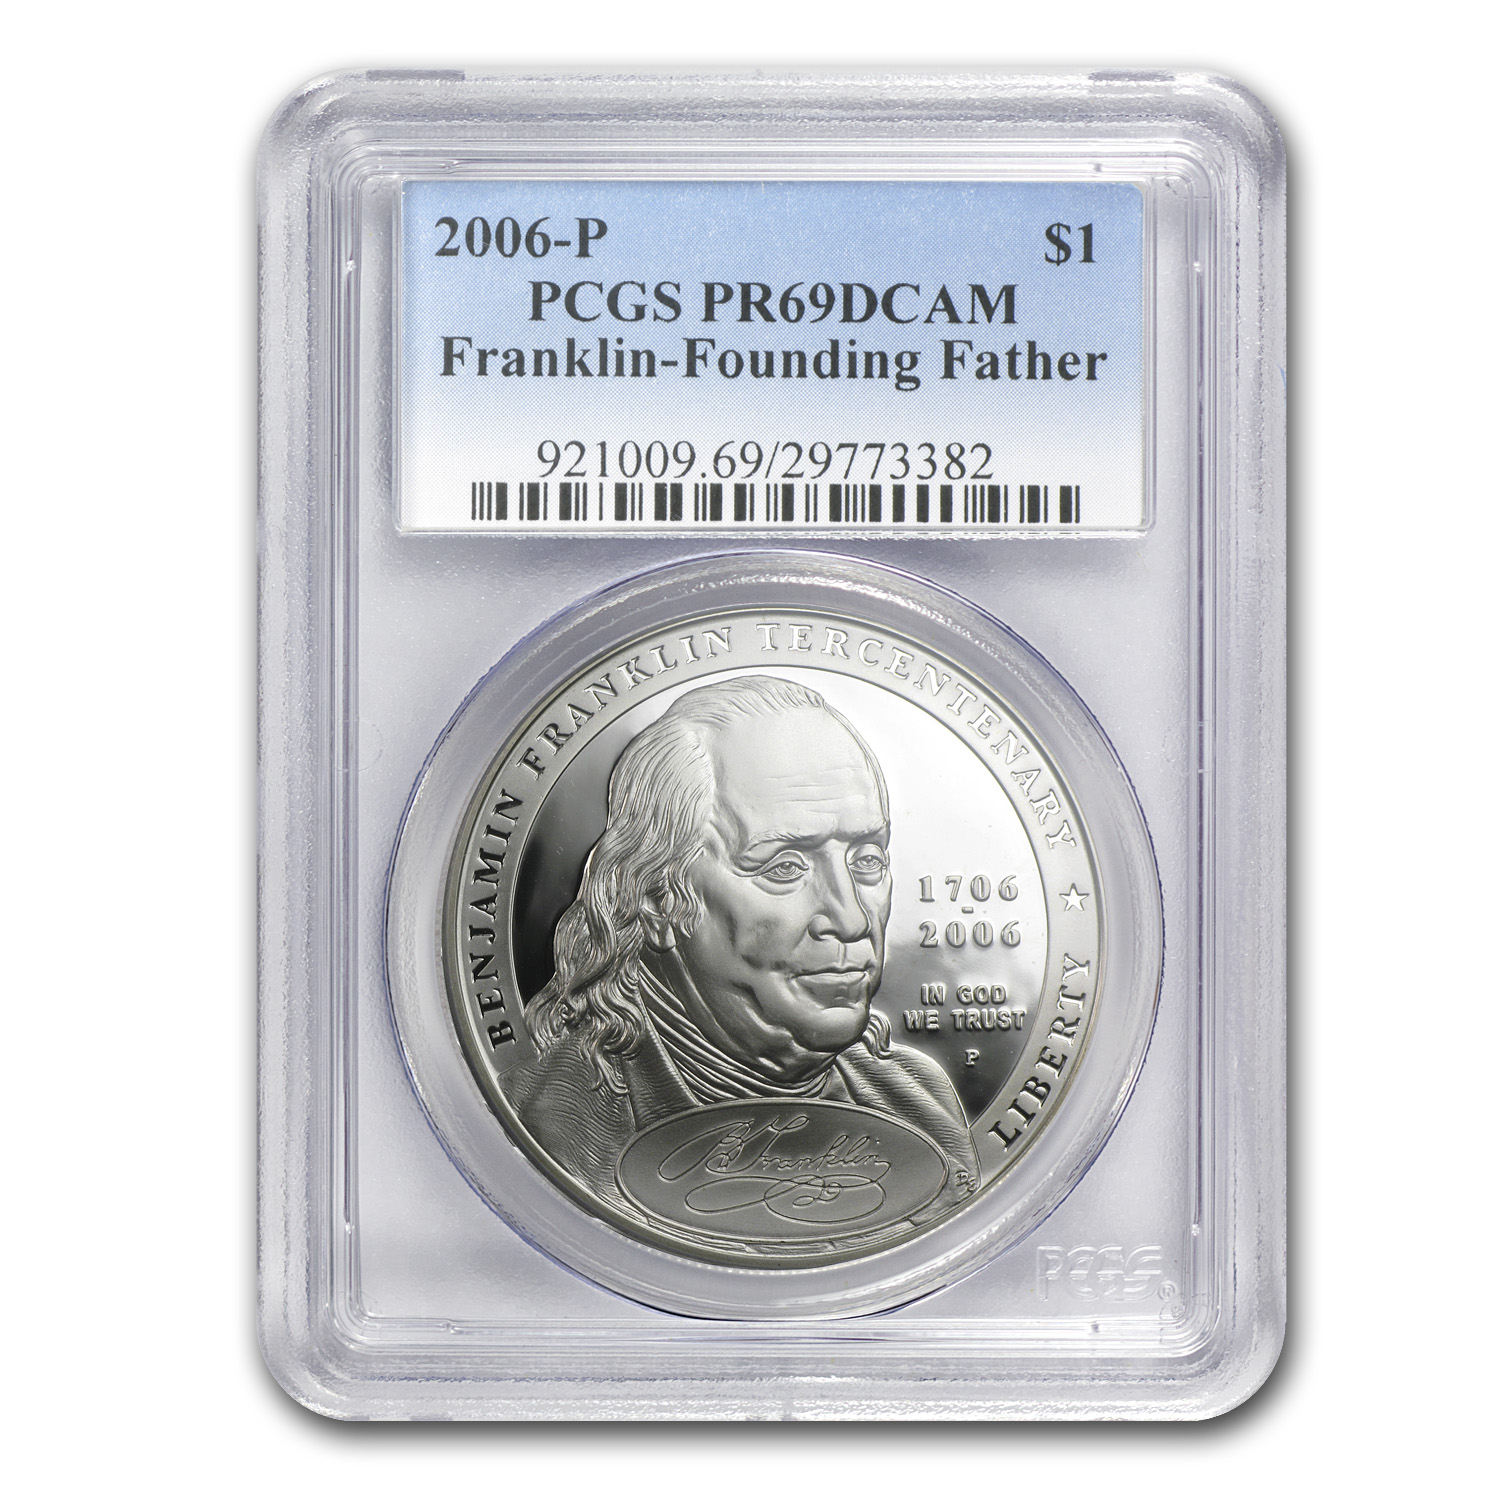 2006-P Ben Franklin Founding Father $1 Silver Commem PR-69 PCGS